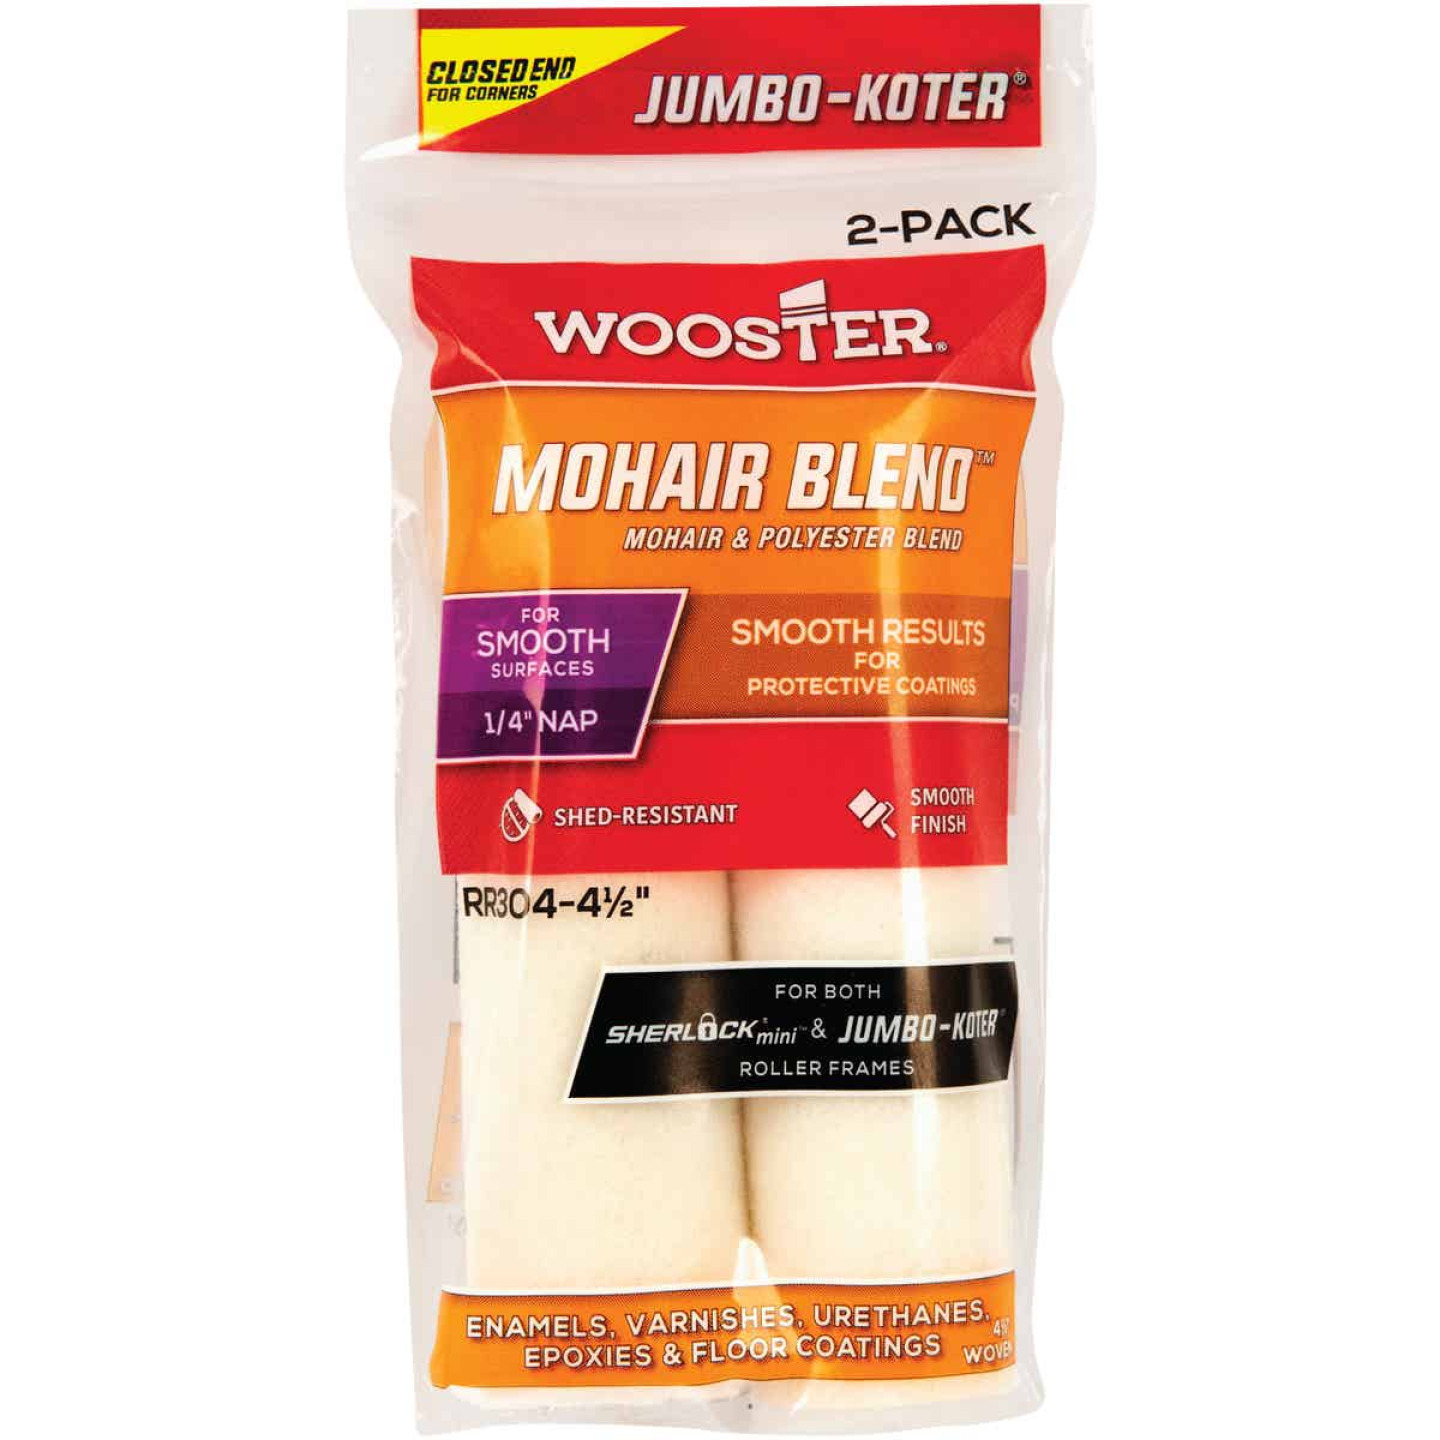 Wooster Jumbo-Koter 4-1/2 In. x 1/4 In. Mohair Blend Mini Woven Fabric Roller Cover (2-Pack) Image 1